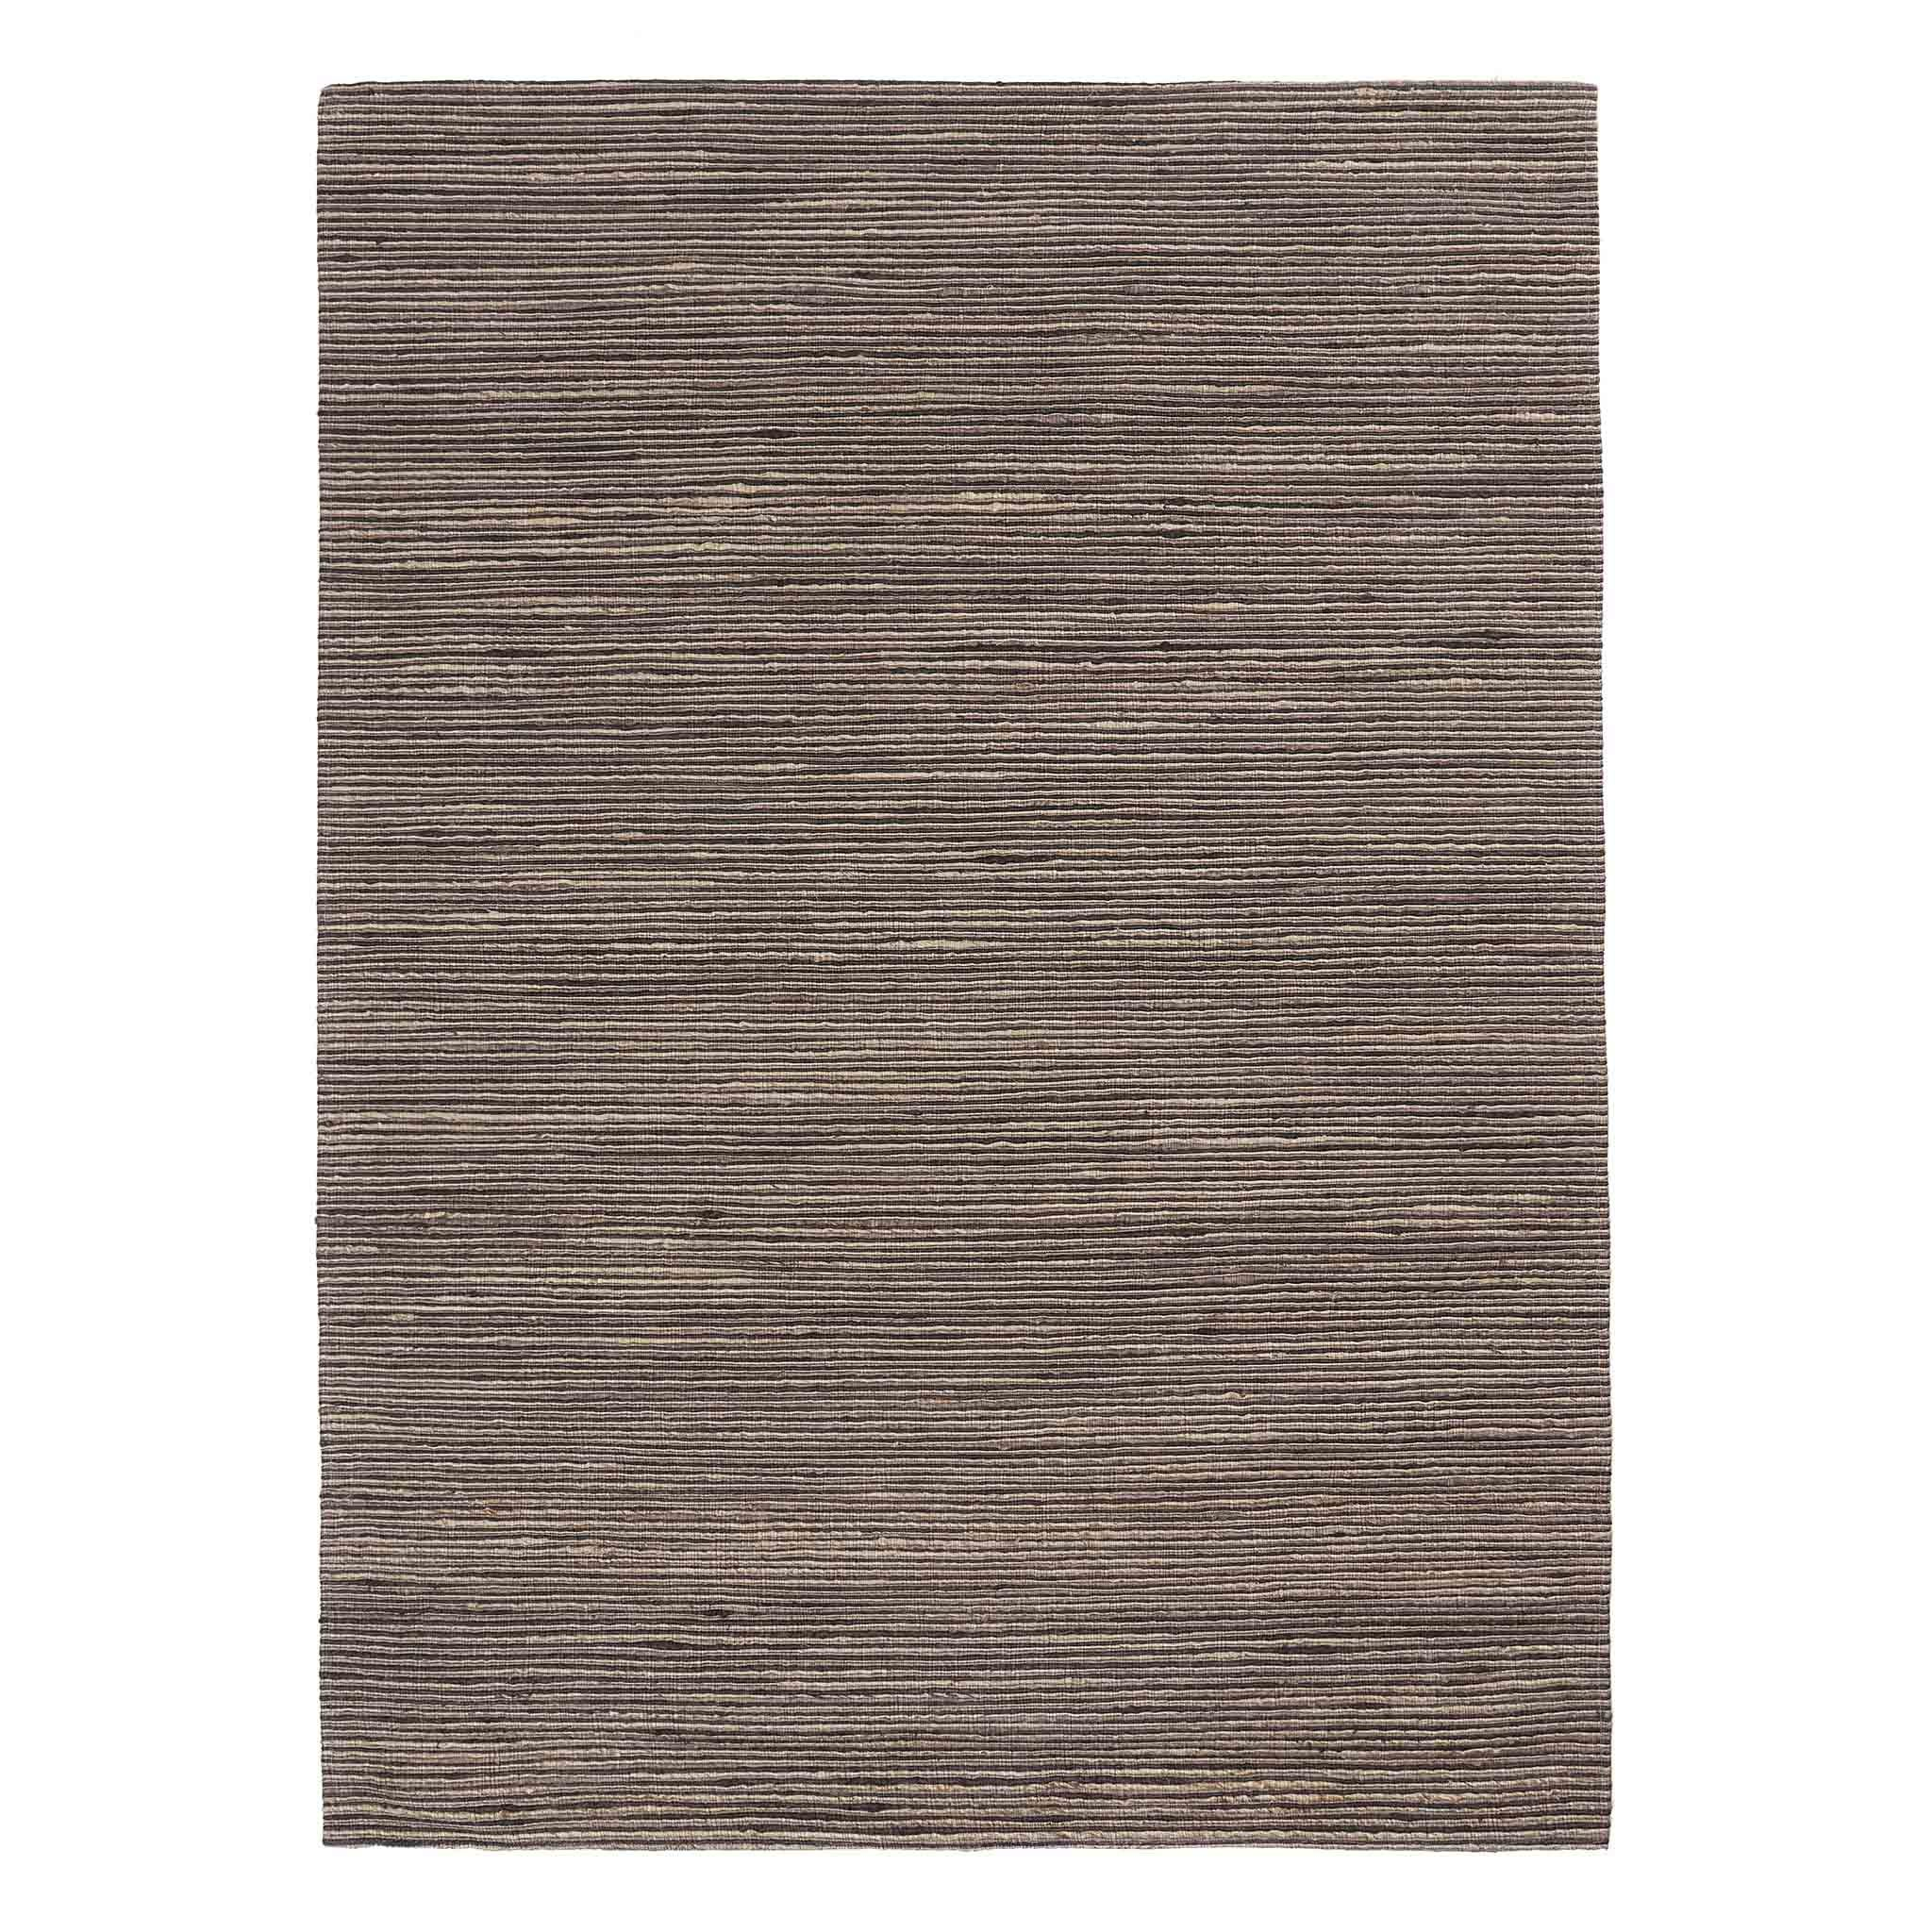 Sanali Rug in natural white & stone grey & charcoal | Home & Living inspiration | URBANARA